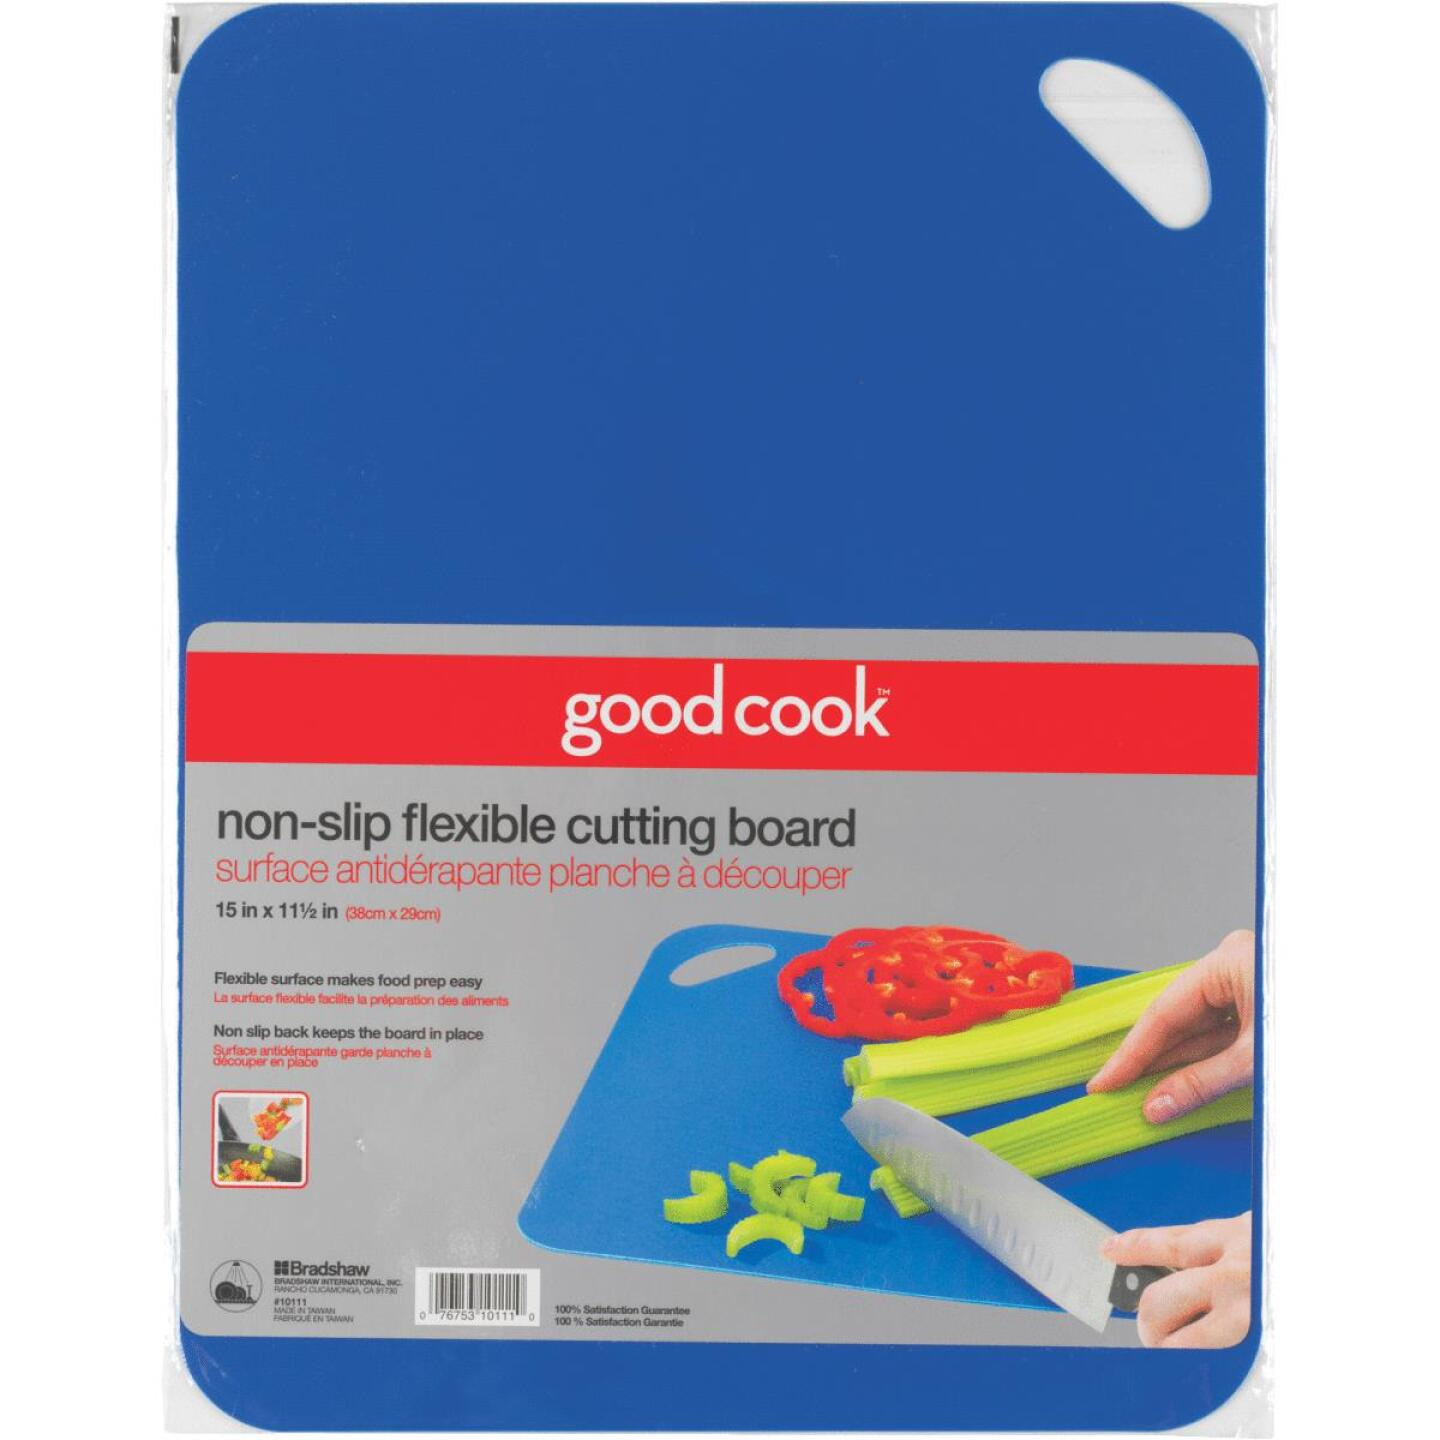 GoodCook 11.5 In. x 15 In. Non-Slip Flexible Chopping Mat Image 1